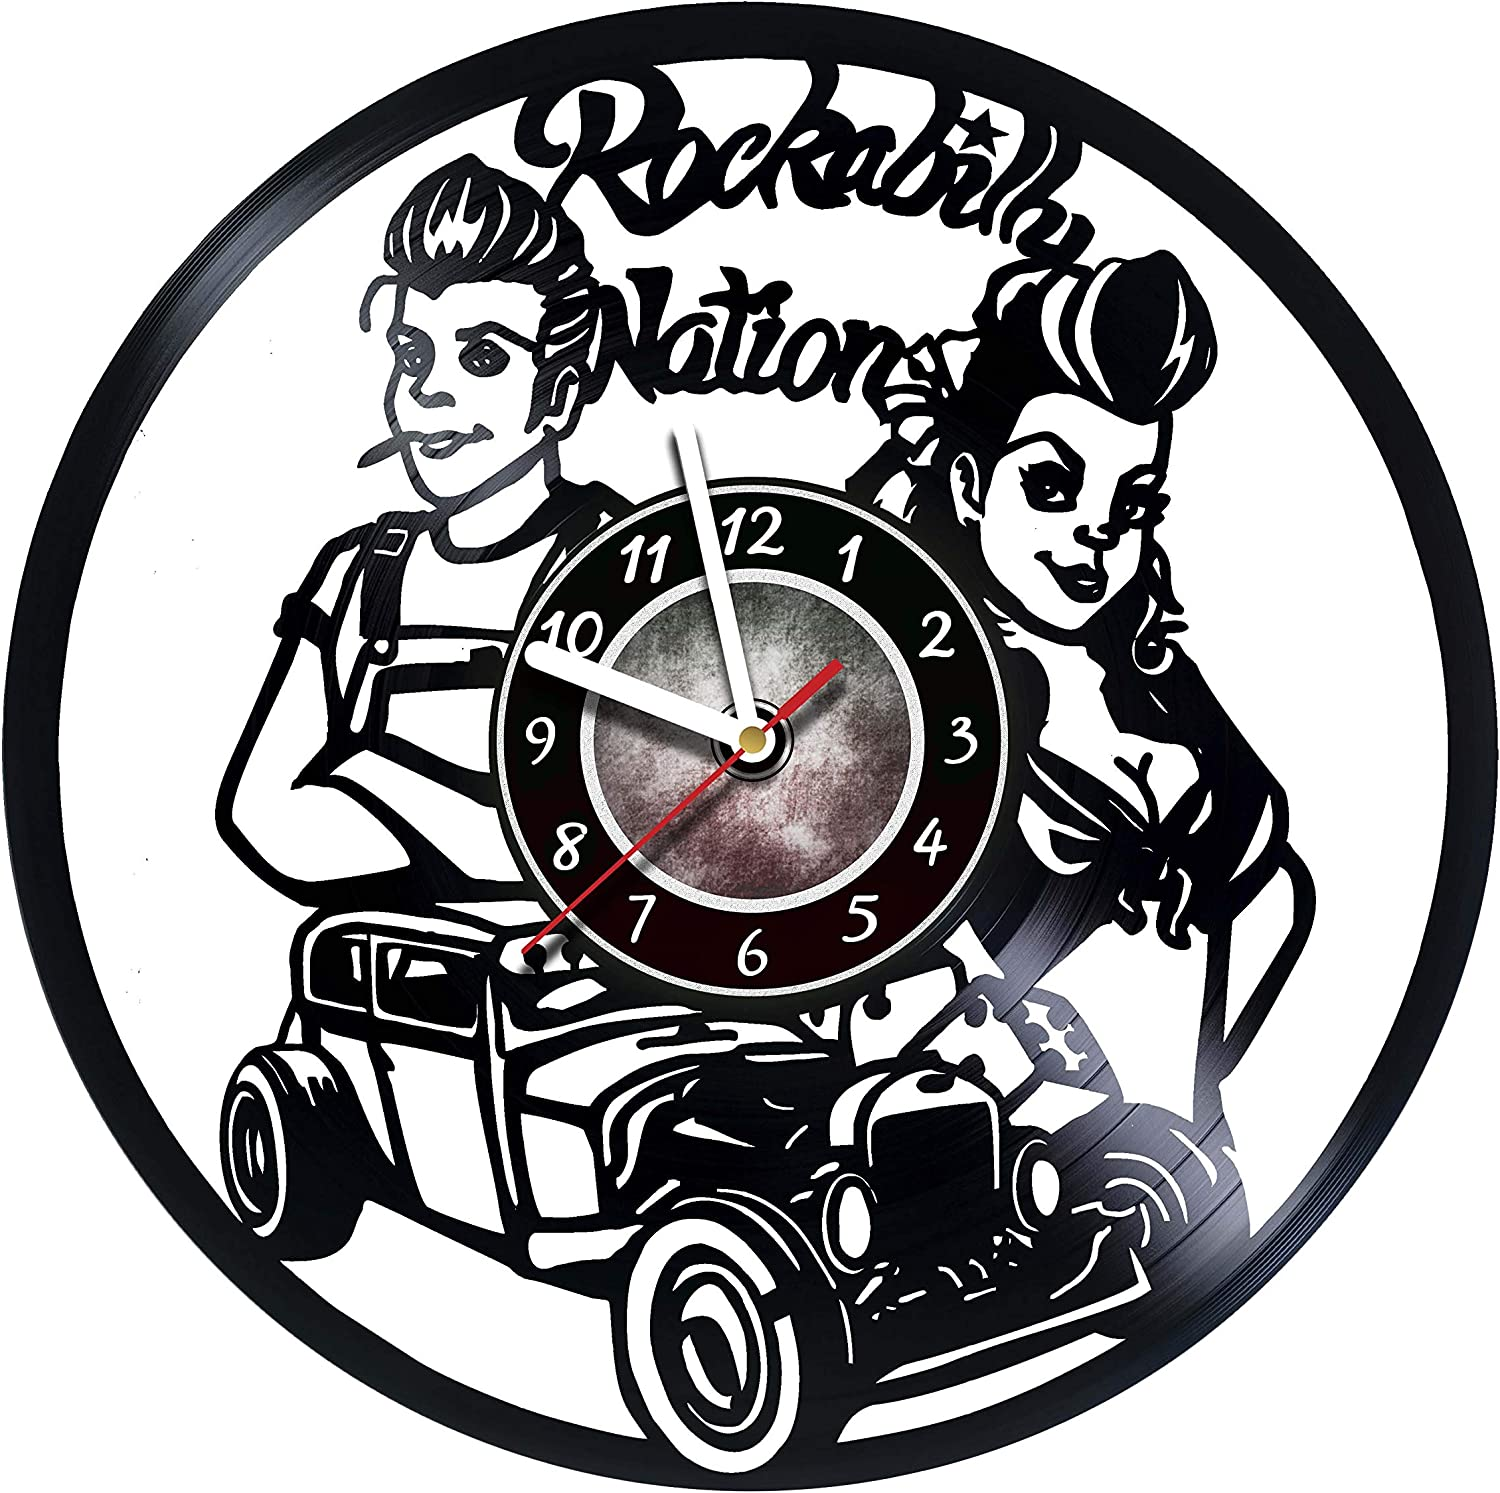 AMARAroom Rockabilly Nation - Wall Clock Made of Vinyl Record - Original Decor - Unique Design - Incredible Gift Idea for Christmas Birthday Anniversary Women Men Boyfriend Girlfriend Teens Friends